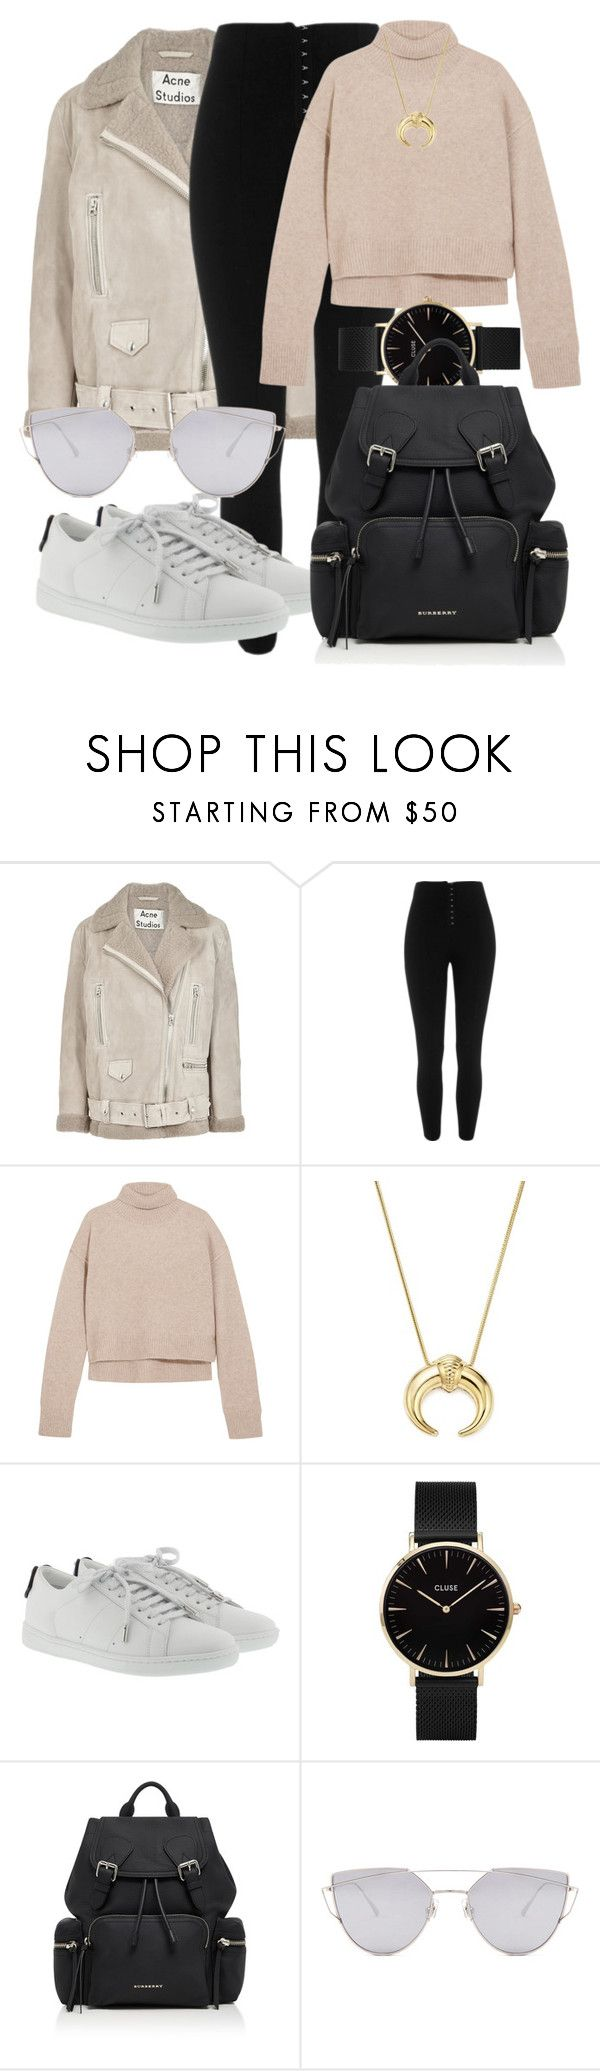 """""""Untitled #4900"""" by beatrizvilar on Polyvore featuring Acne Studios, River Island, Rejina Pyo, Bloomingdale's, Yves Saint Laurent, CLUSE, Burberry and Gentle Monster"""